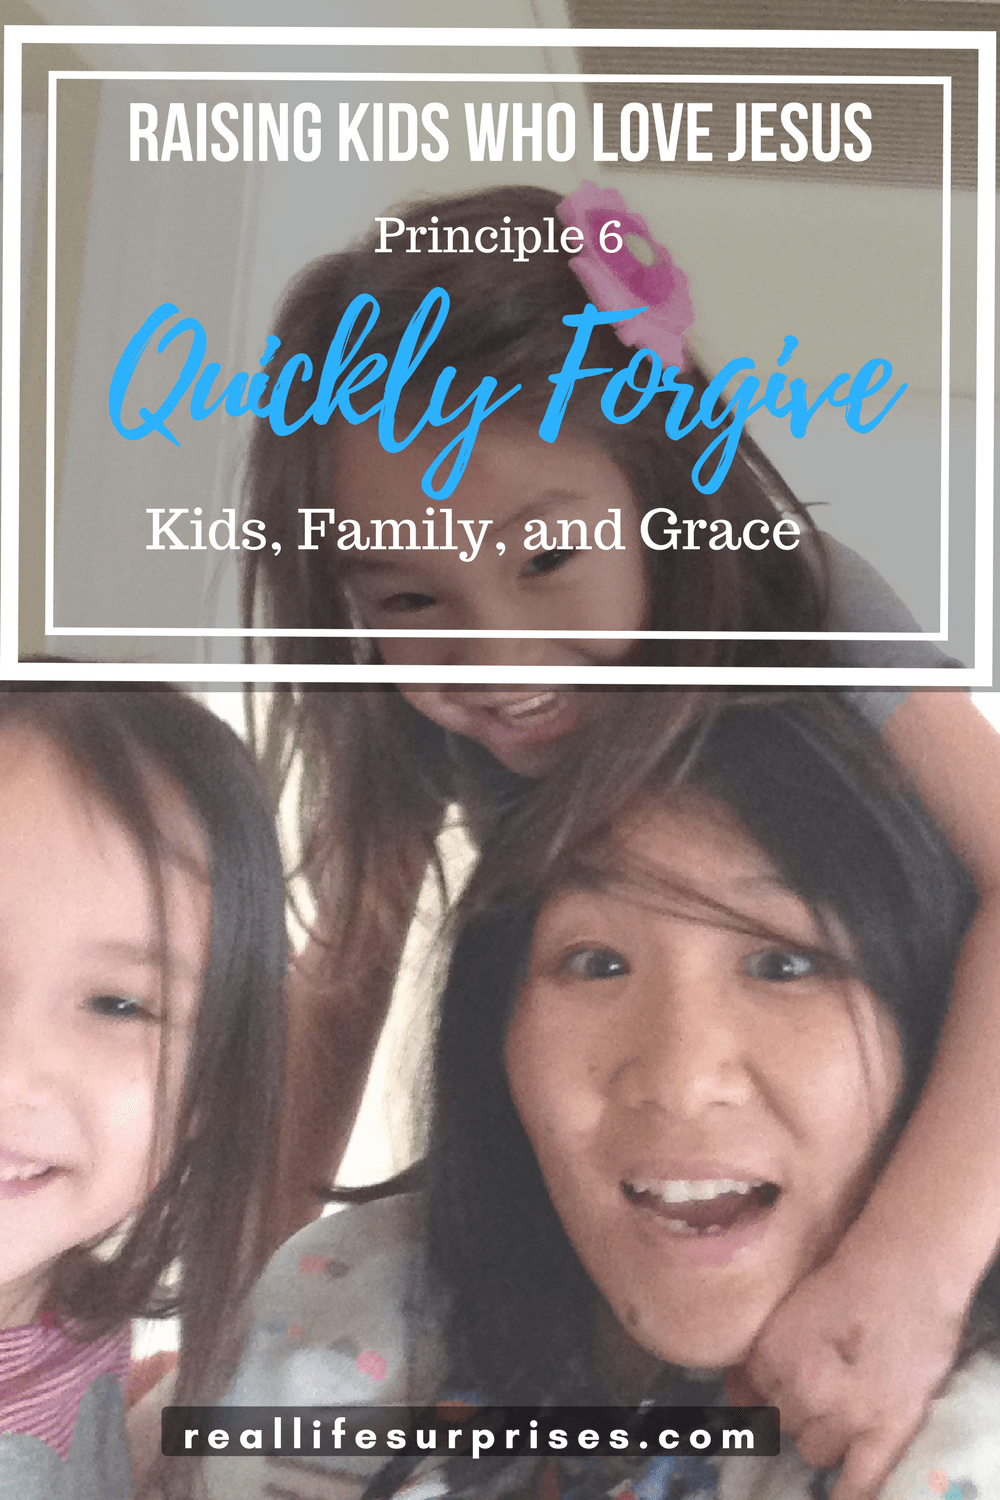 Quickly forgive Kid, Family, and Grace